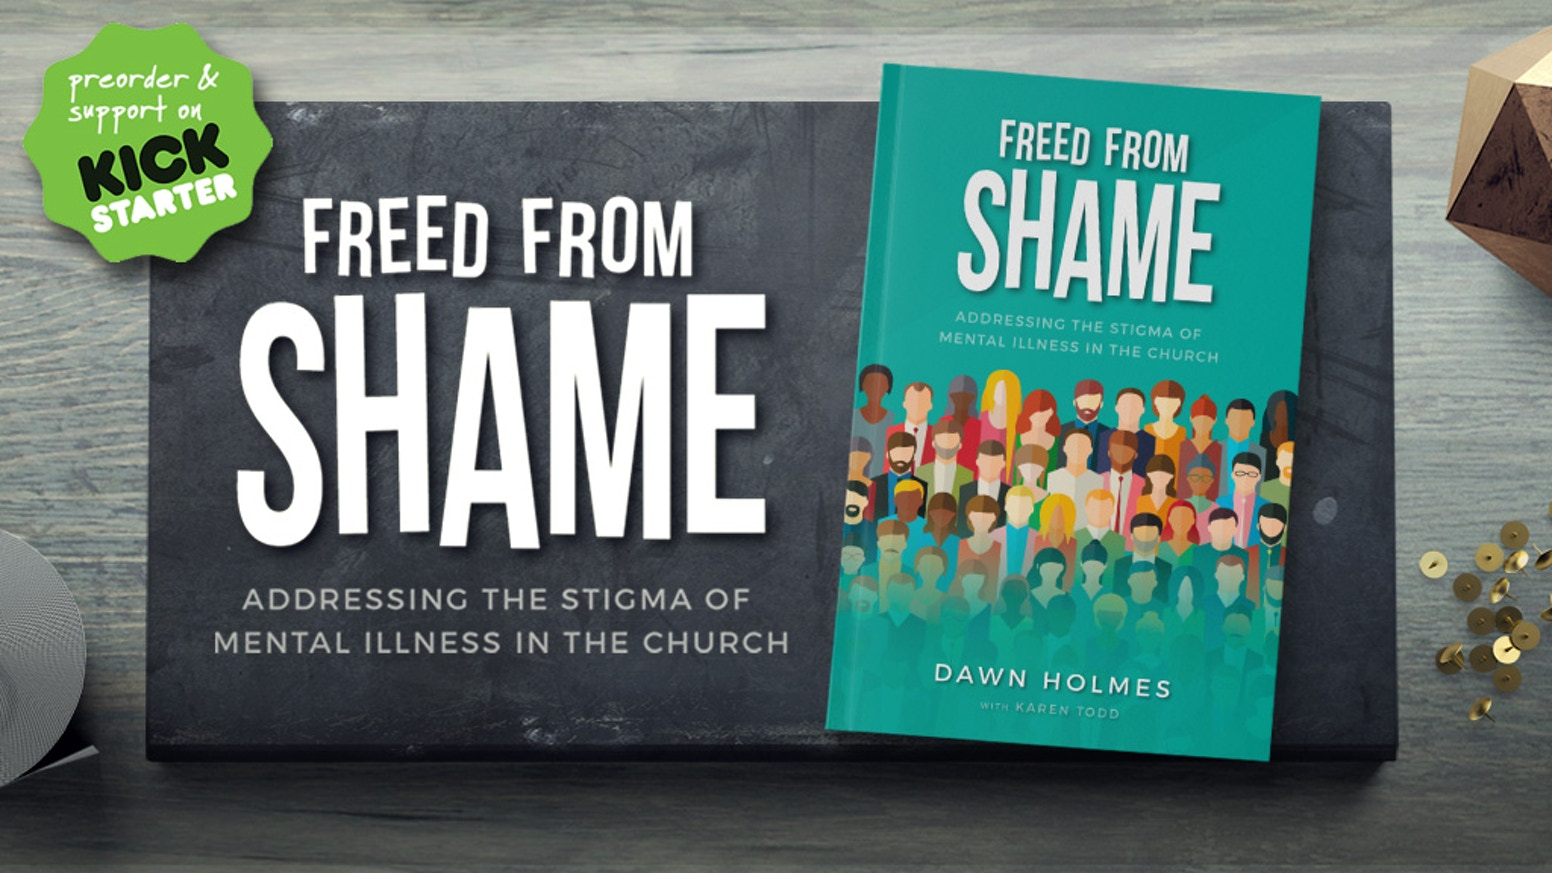 Launches in January 2018.   A book by Dawn Holmes about the experiences of Christians living with mental health issues, and what churches can do to understand and support them.